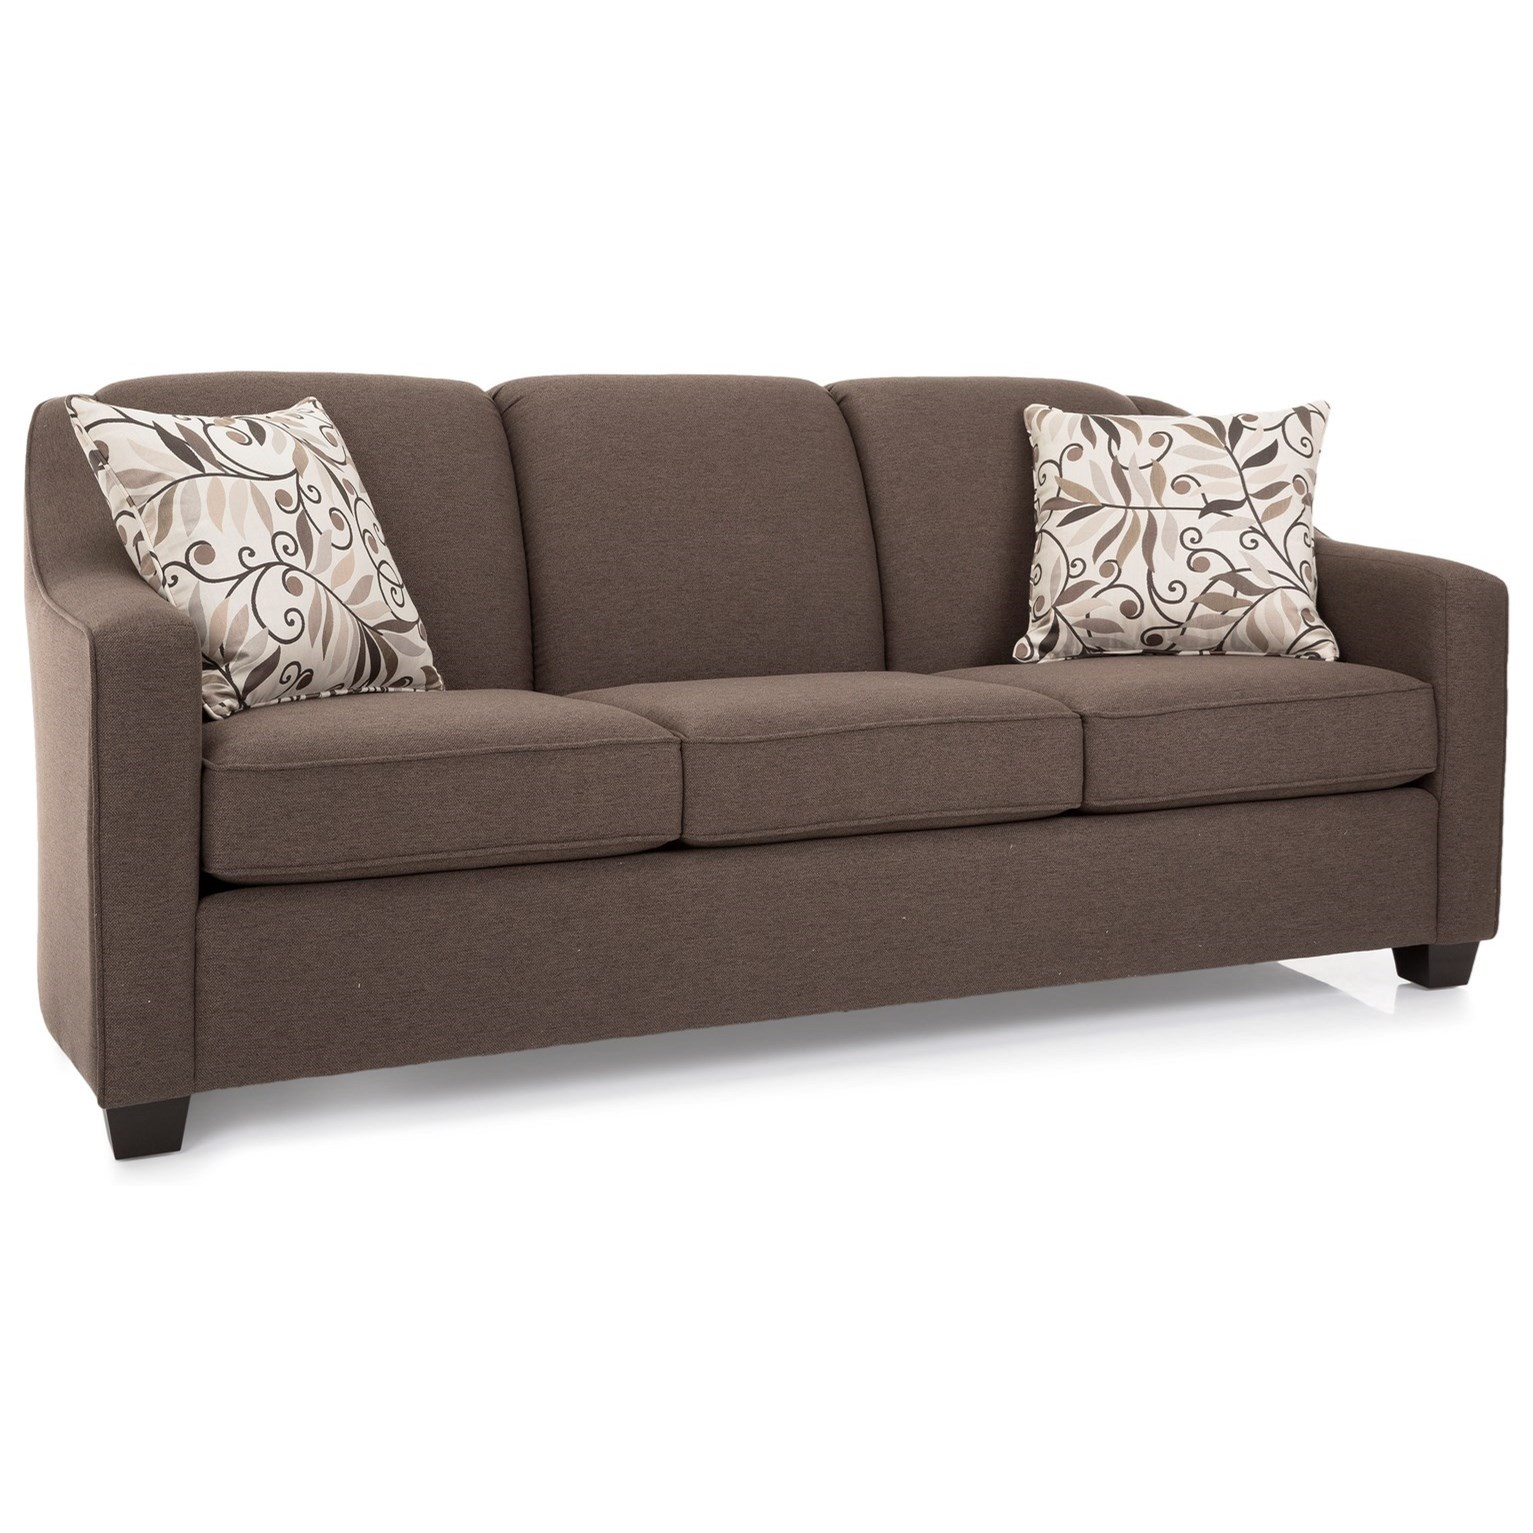 2934 Sofa by Taelor Designs at Bennett's Furniture and Mattresses